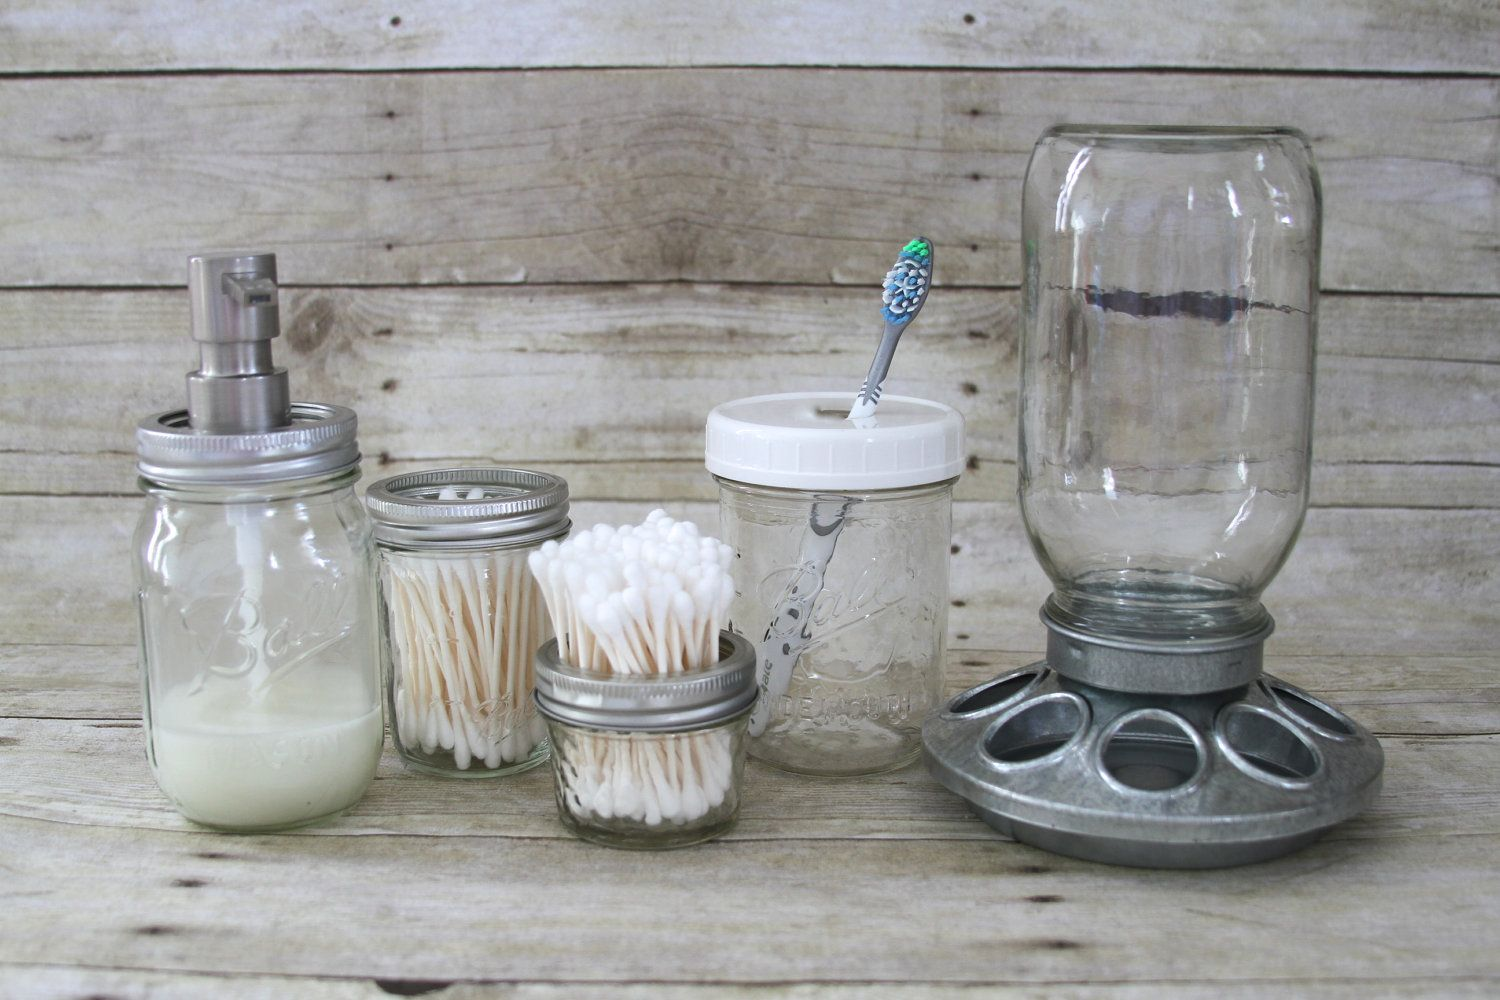 Diy Mason Jar Cotton Ball Qtip Holders Whole Project Was 6 99 With 50 Off Sale Lids From Michaels And 3 Mason J Mason Jar Bathroom Mason Jars Mason Jar Diy